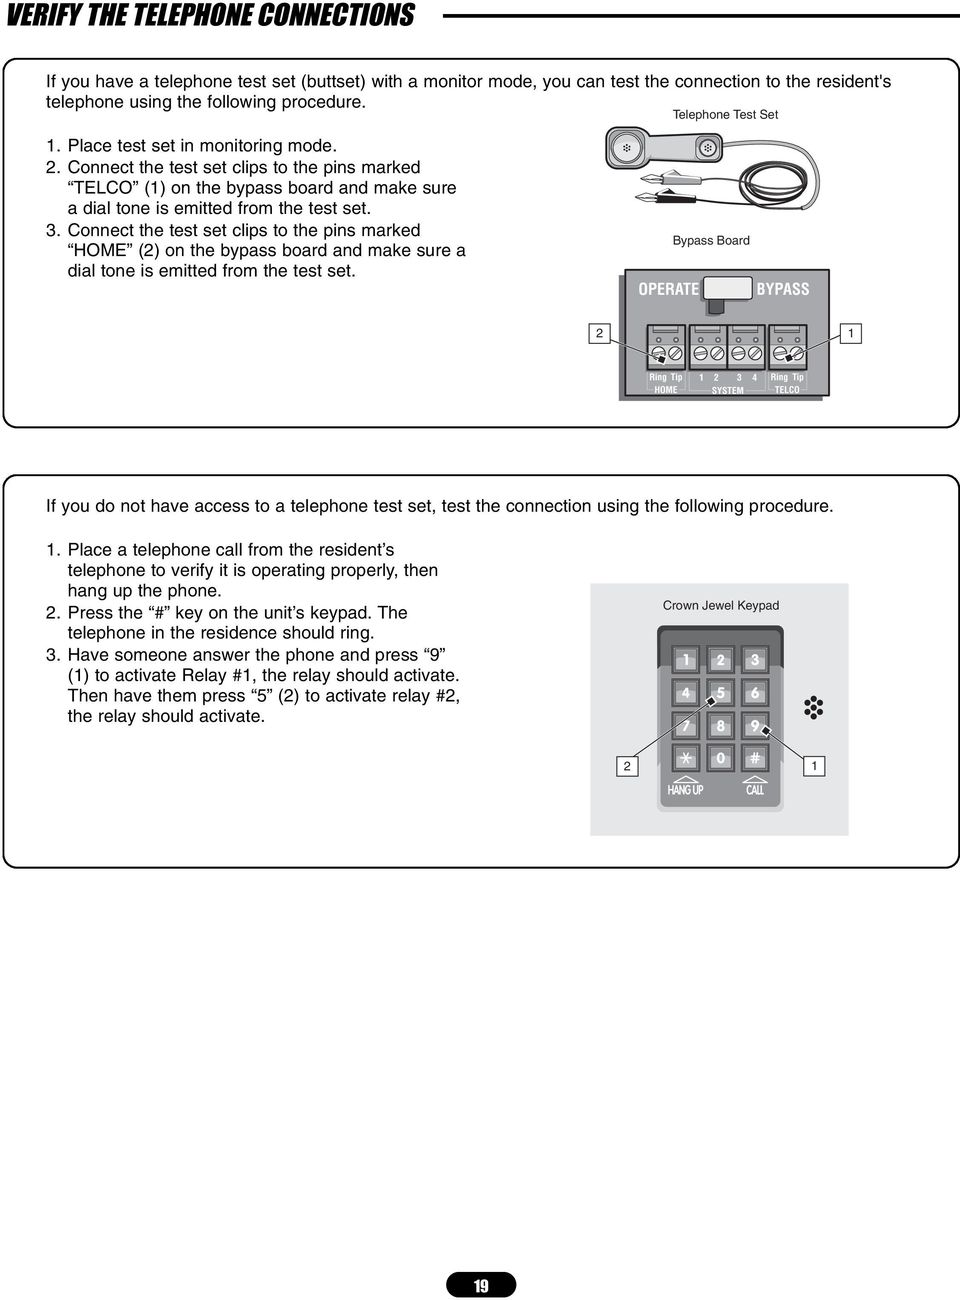 Crown Jewel Telephone Entry System Pdf The Link Intercom Every Home Should Have One Circuit Connect Test Set Clips To Pins Marked 2 On Bypass